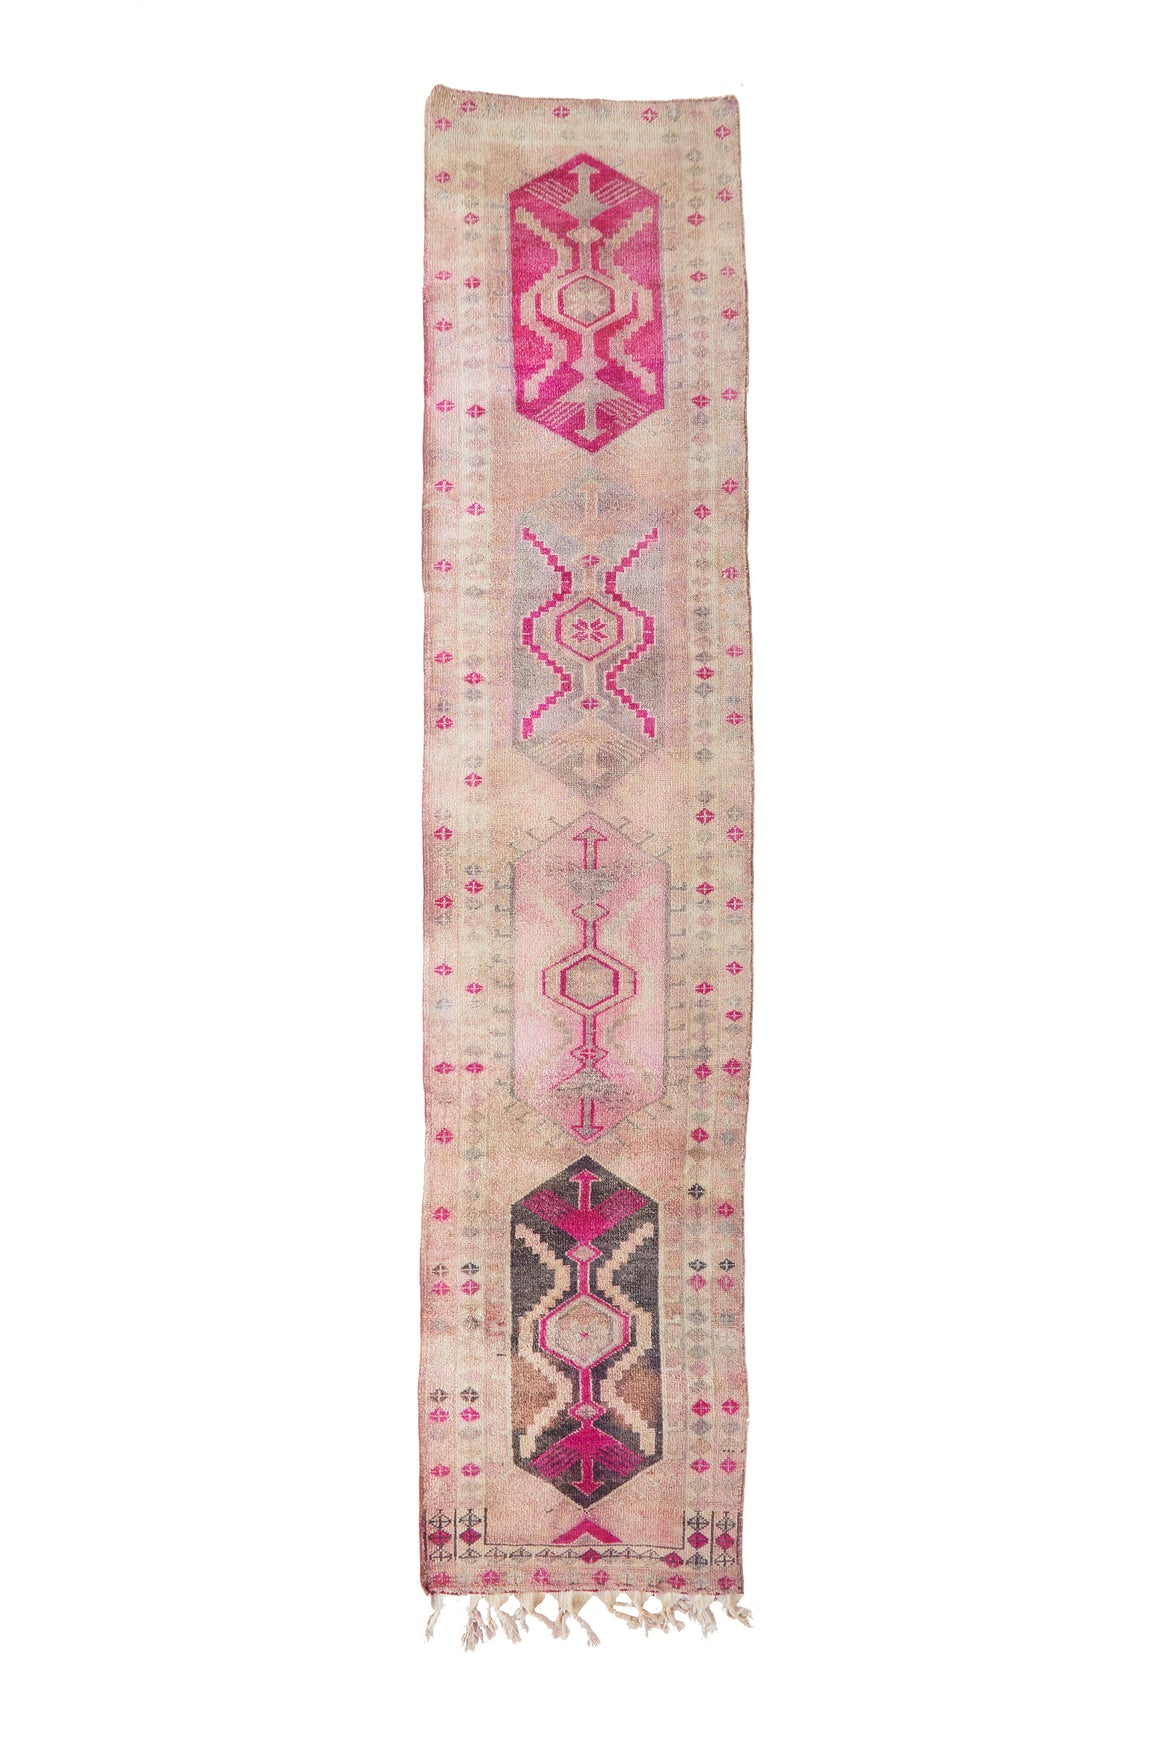 "'Geranium' Vintage Turkish Runner - 2'10 x 13'4"" - Canary Lane - Curated Textiles"